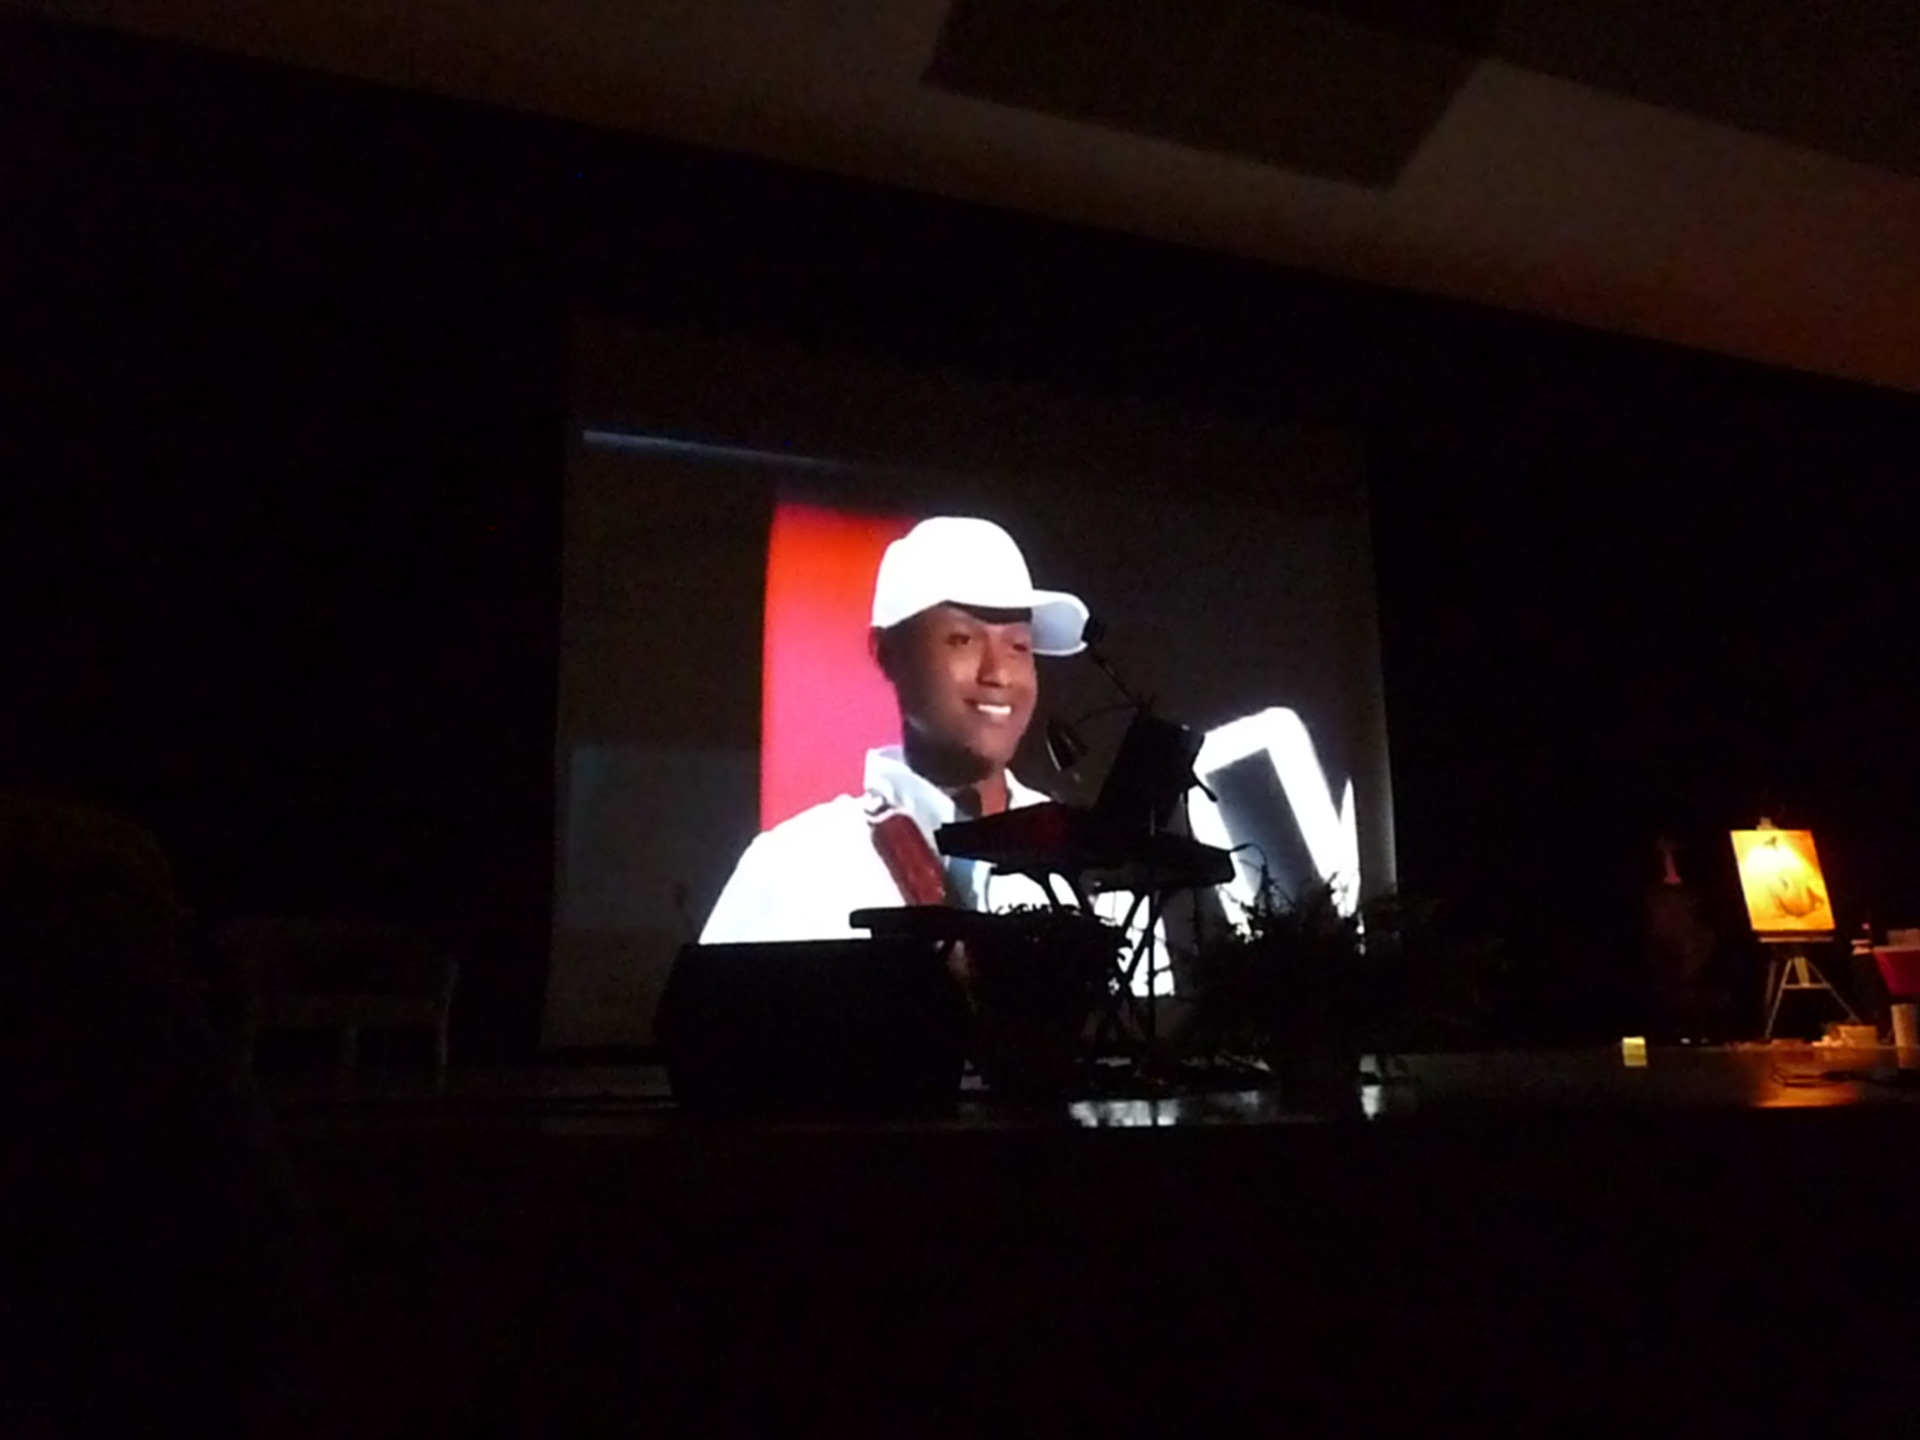 Javier Colon - video of him winning The Voice